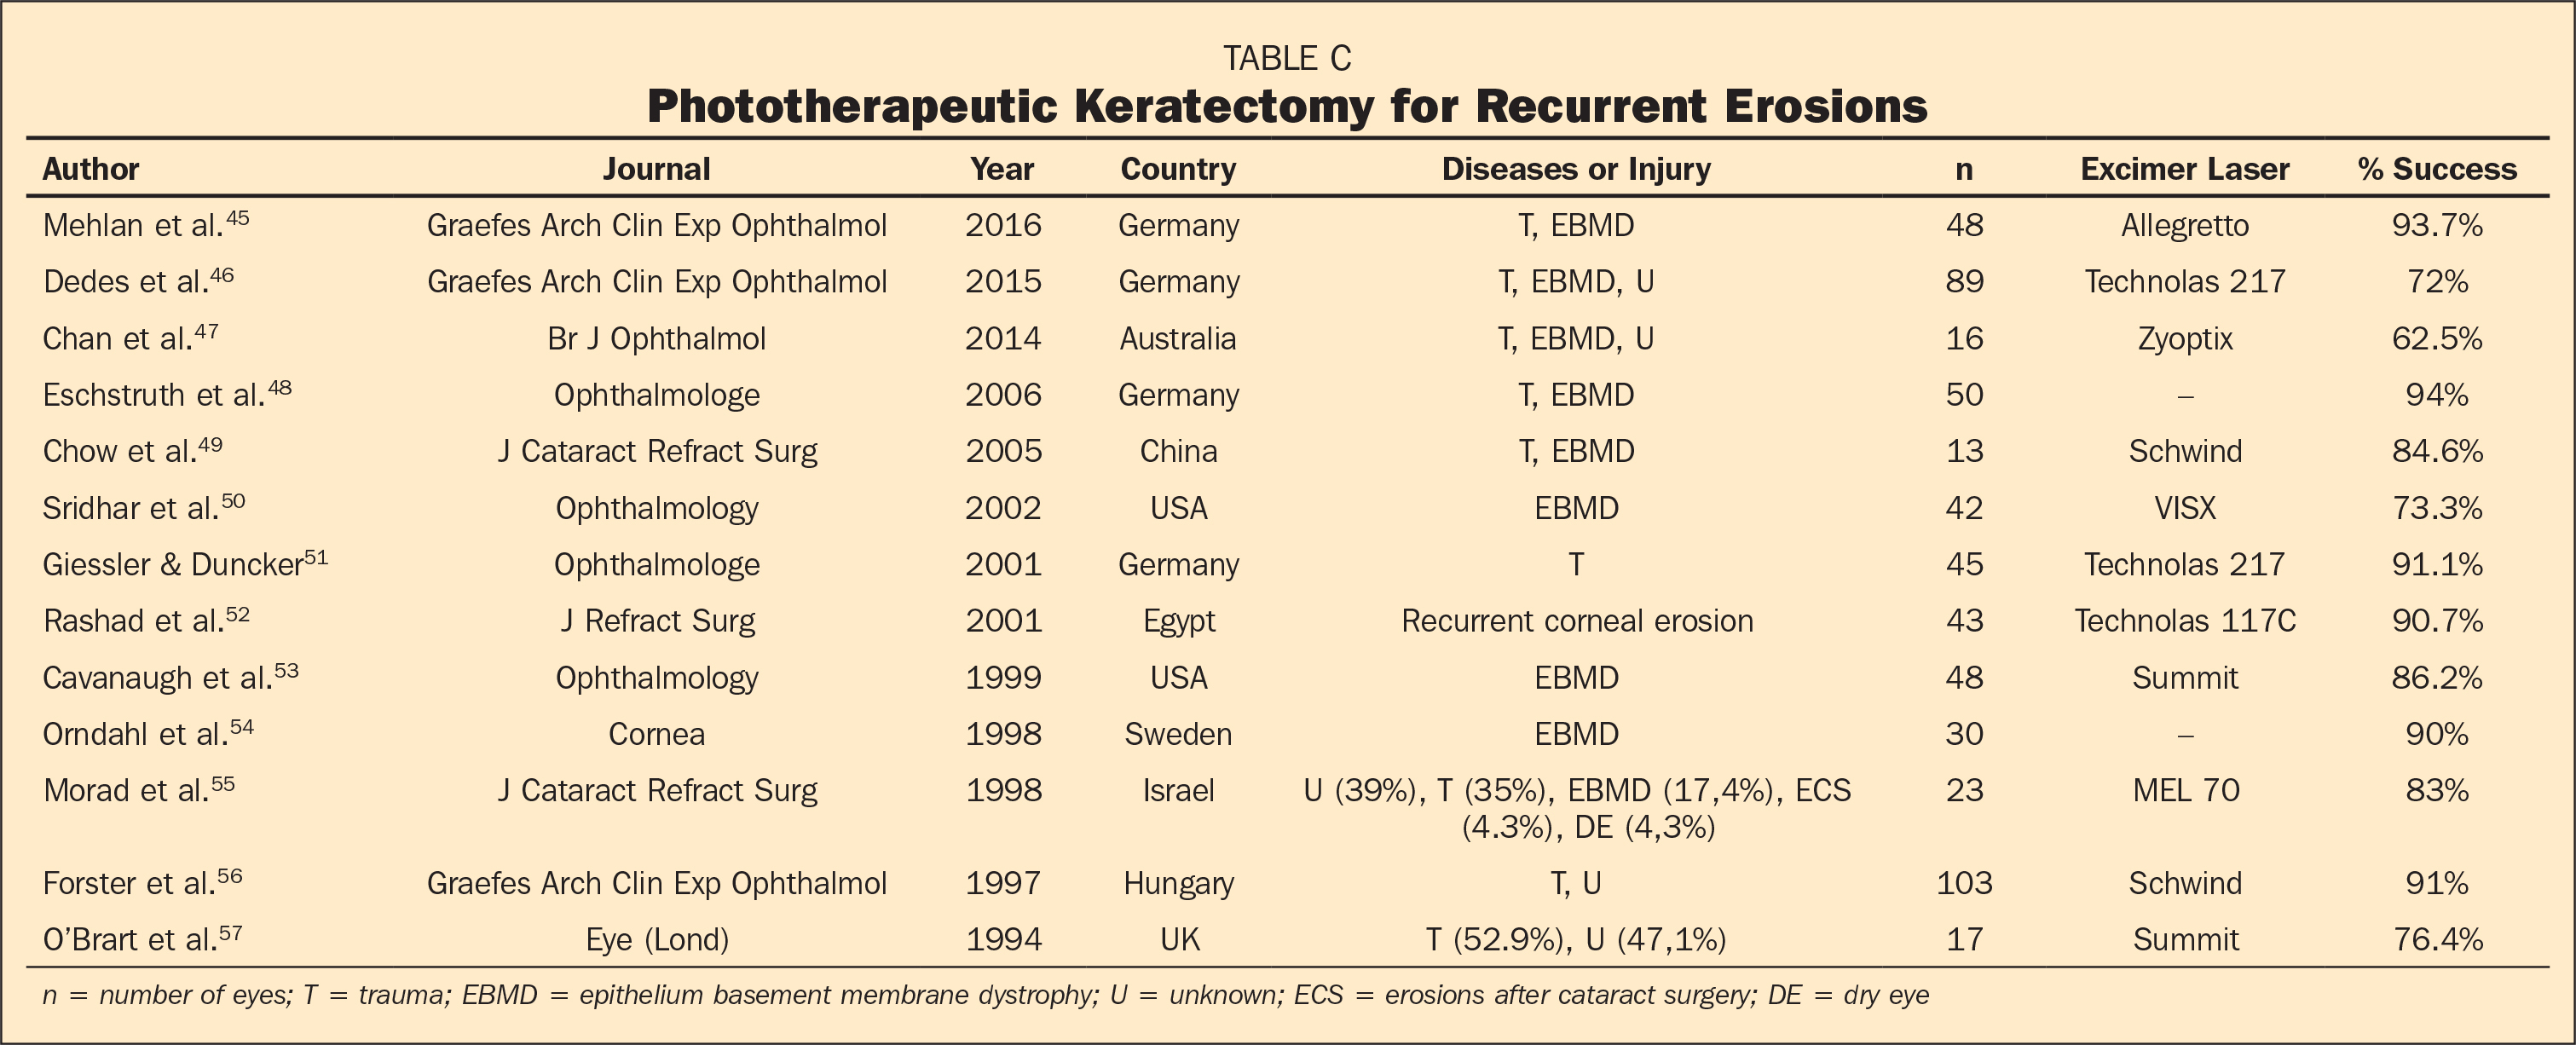 Phototherapeutic Keratectomy for Recurrent Erosions